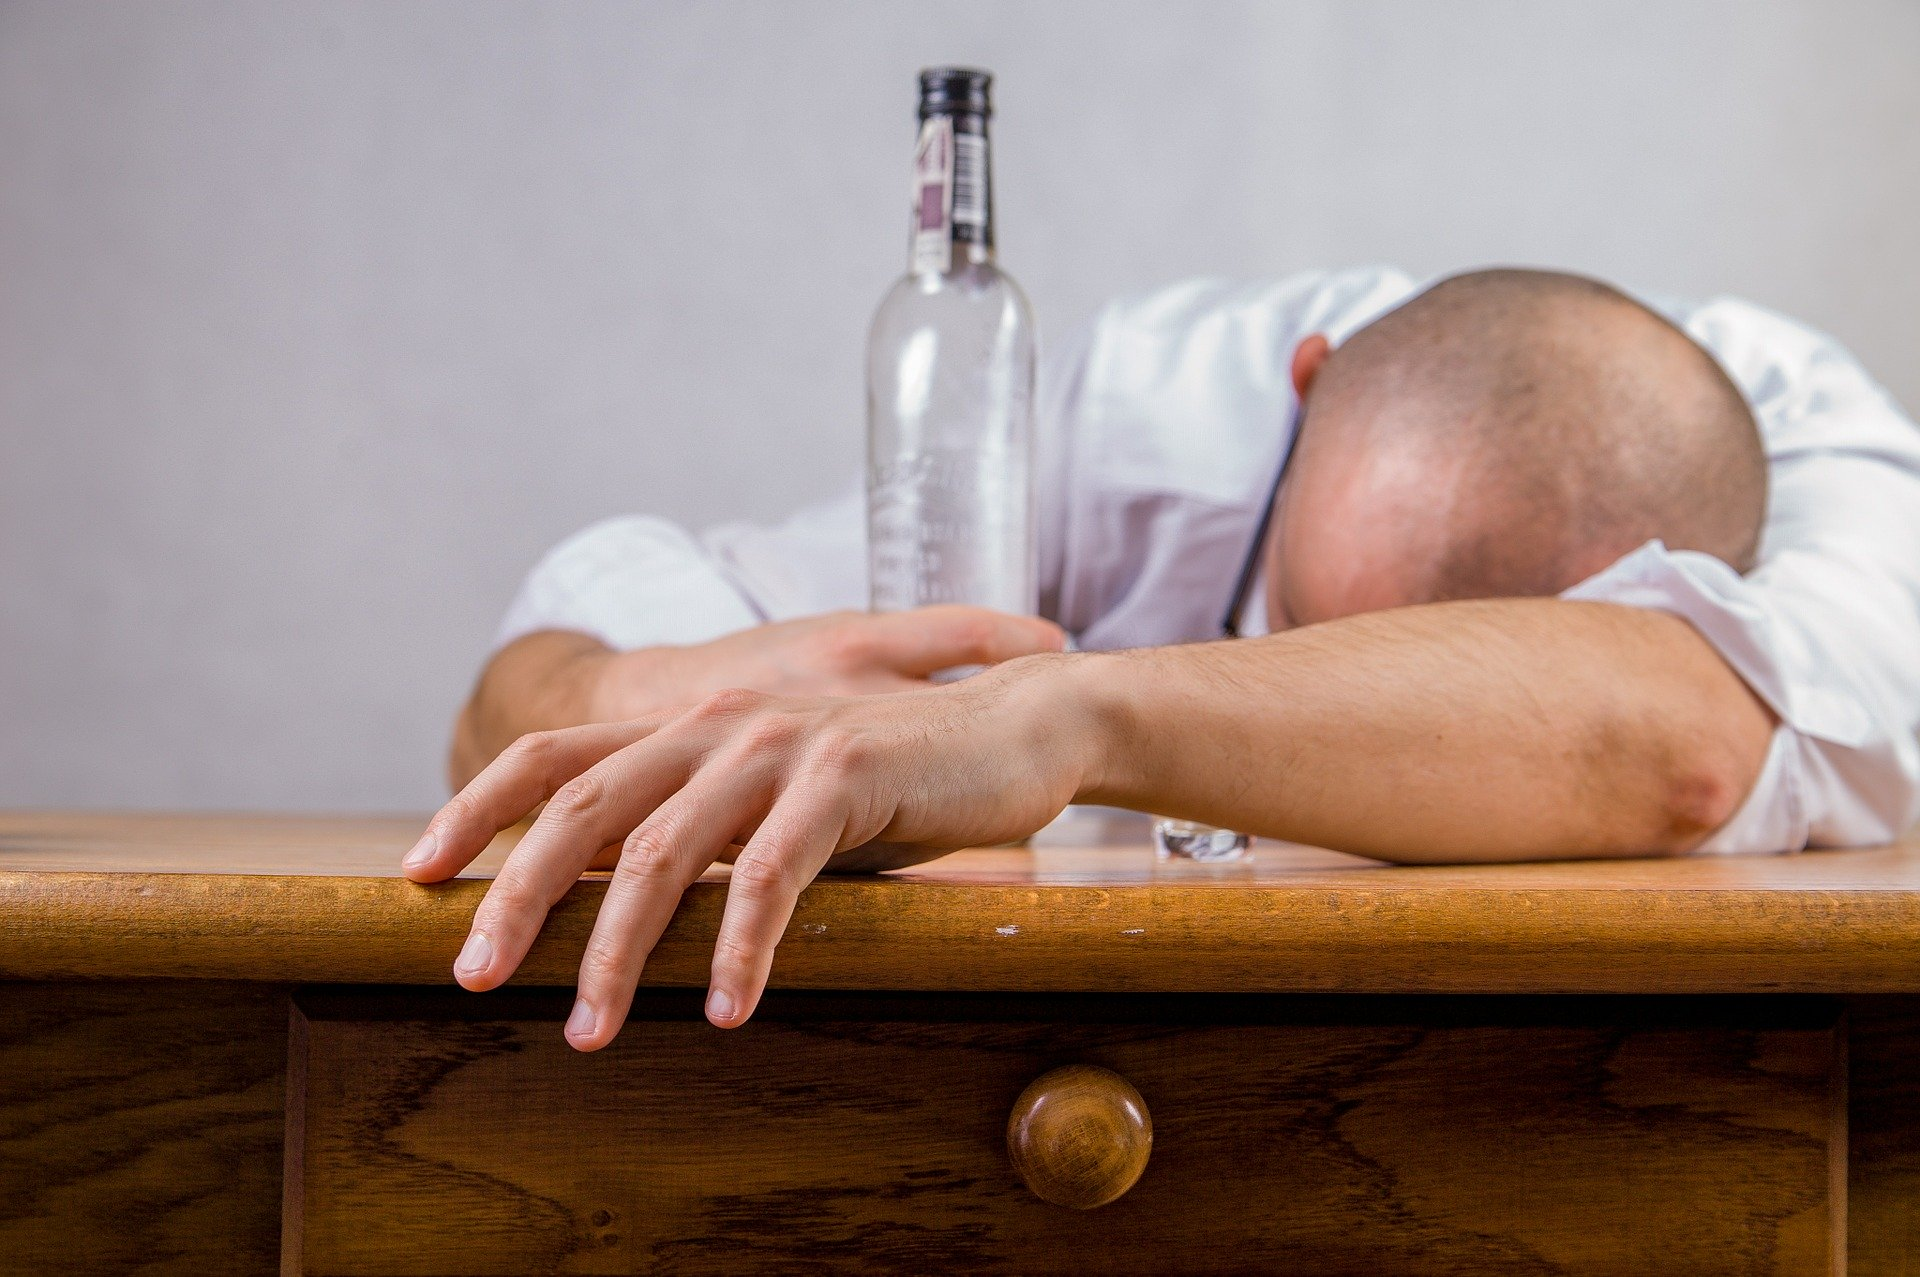 Signs of a Functioning Alcoholic